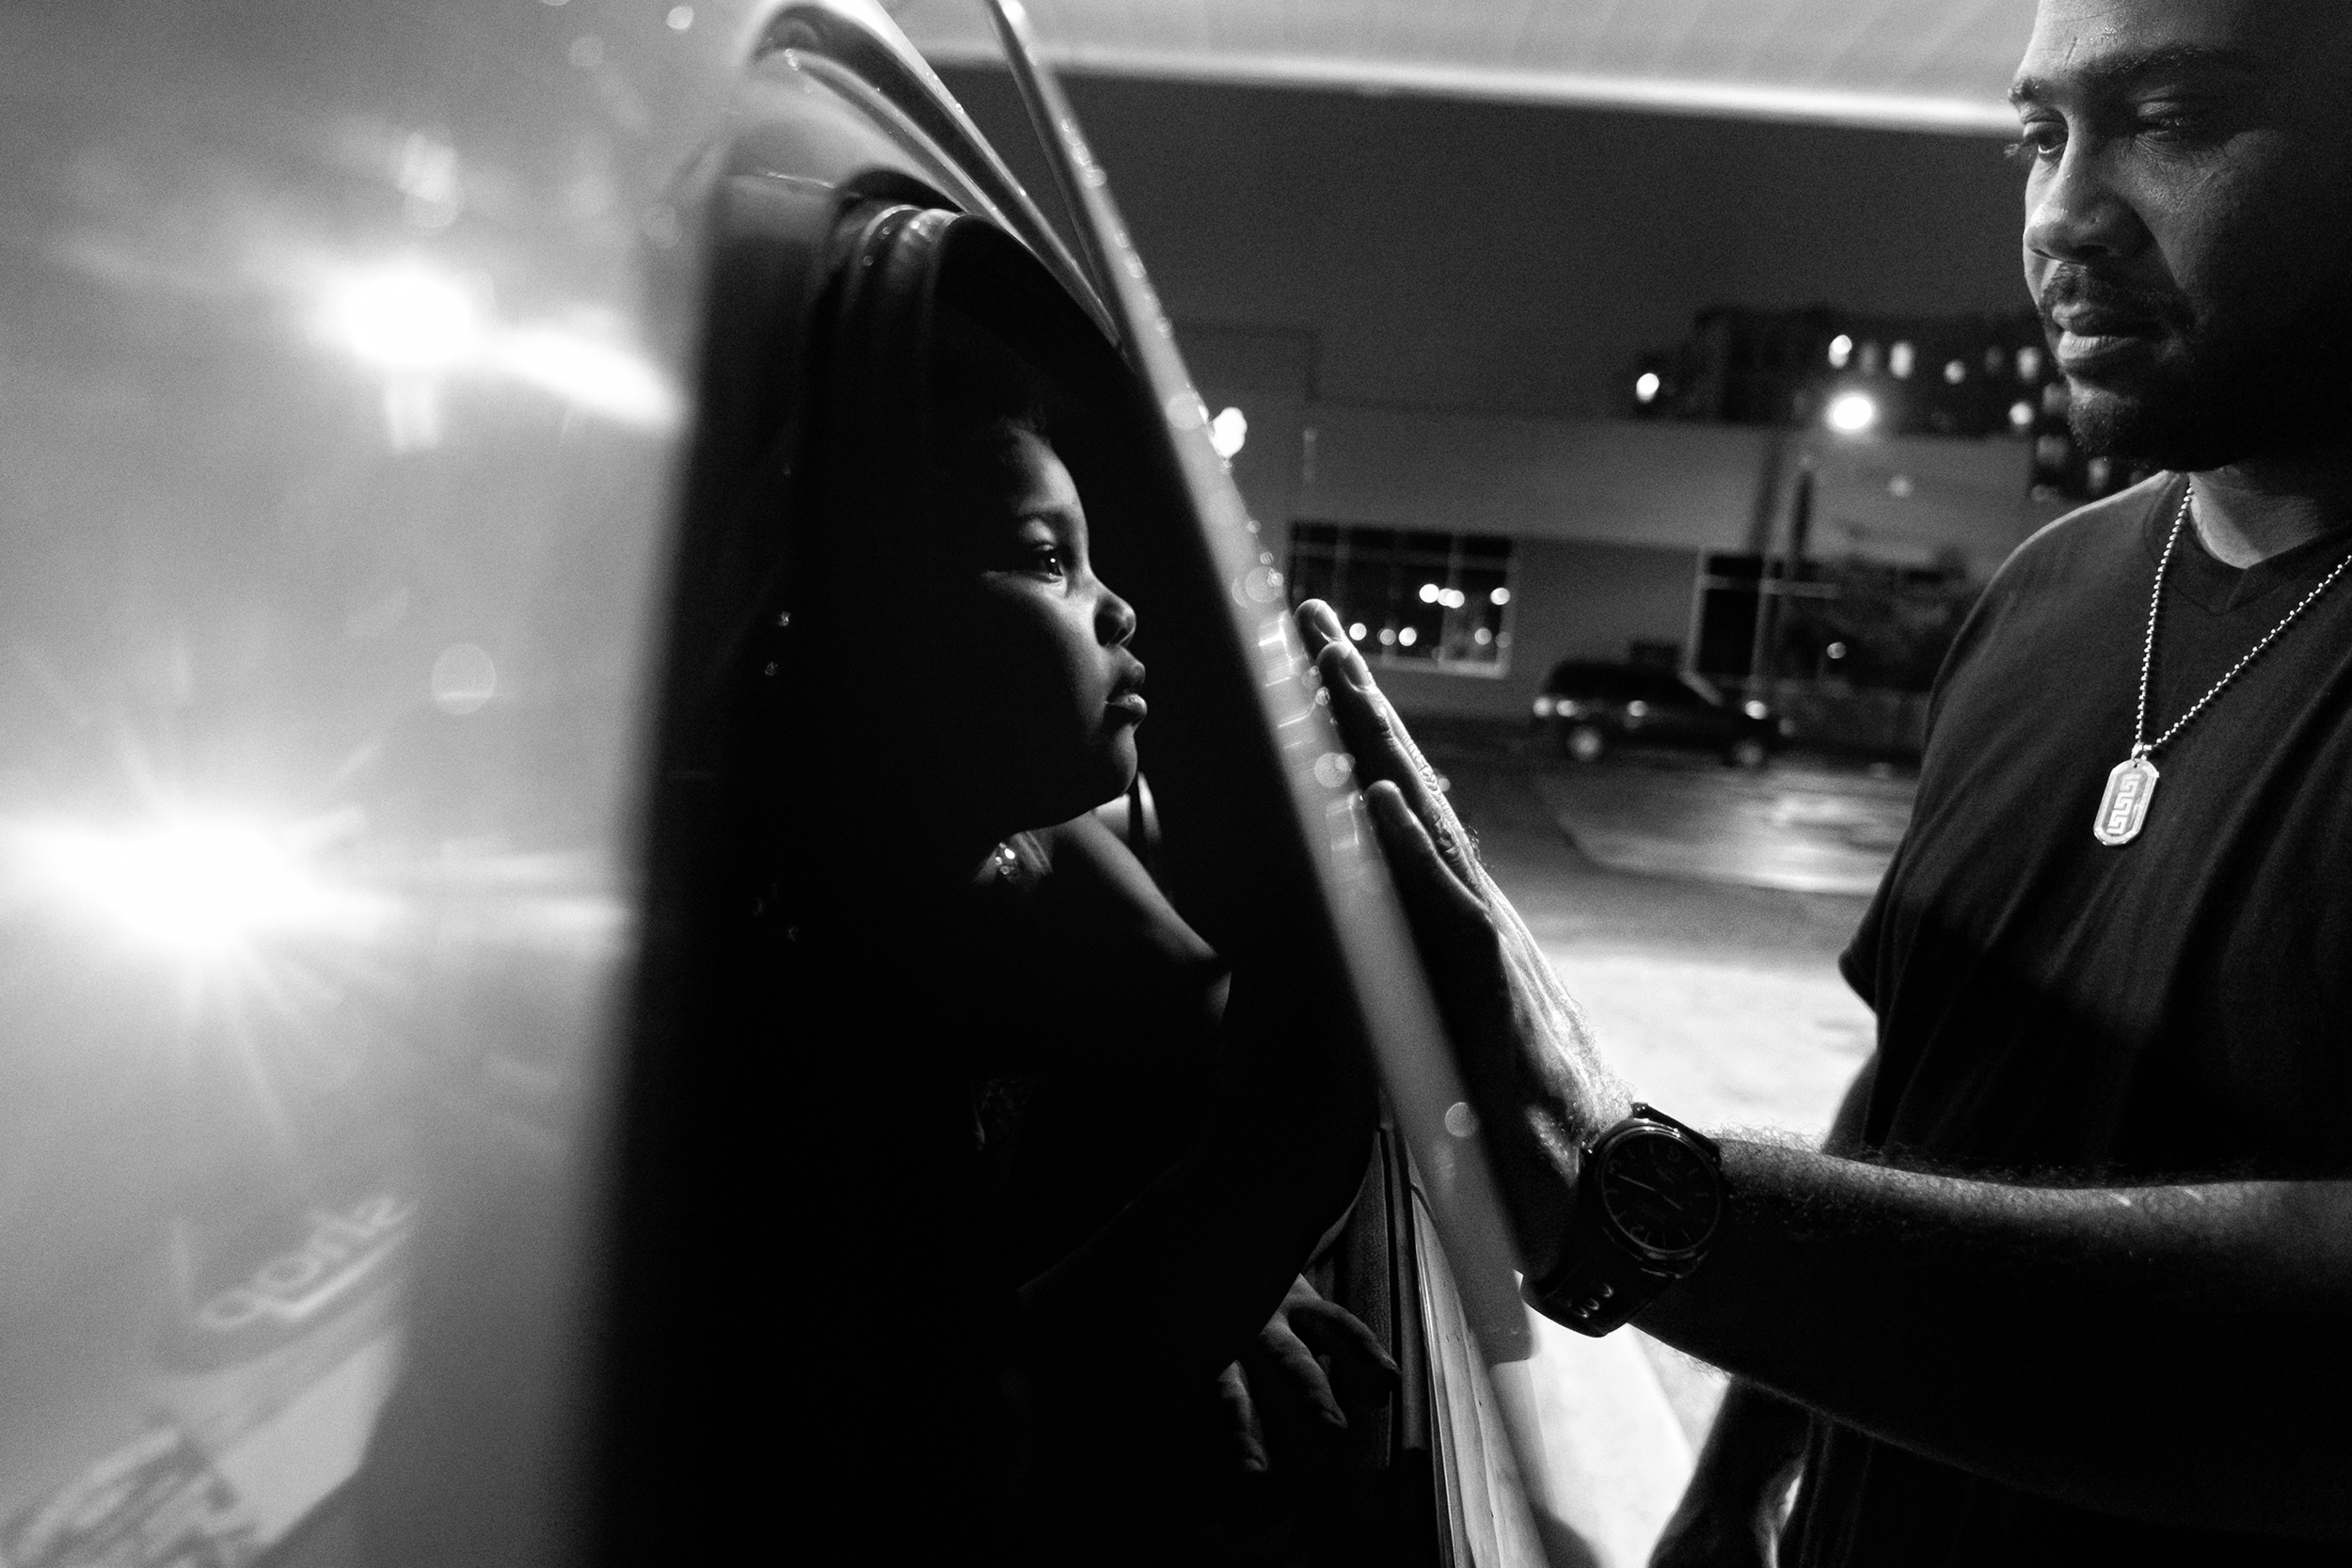 Blly Garcia shares a tender moment with daughter Esmeralda during a trip to the gas station. 2012 © Zun Lee